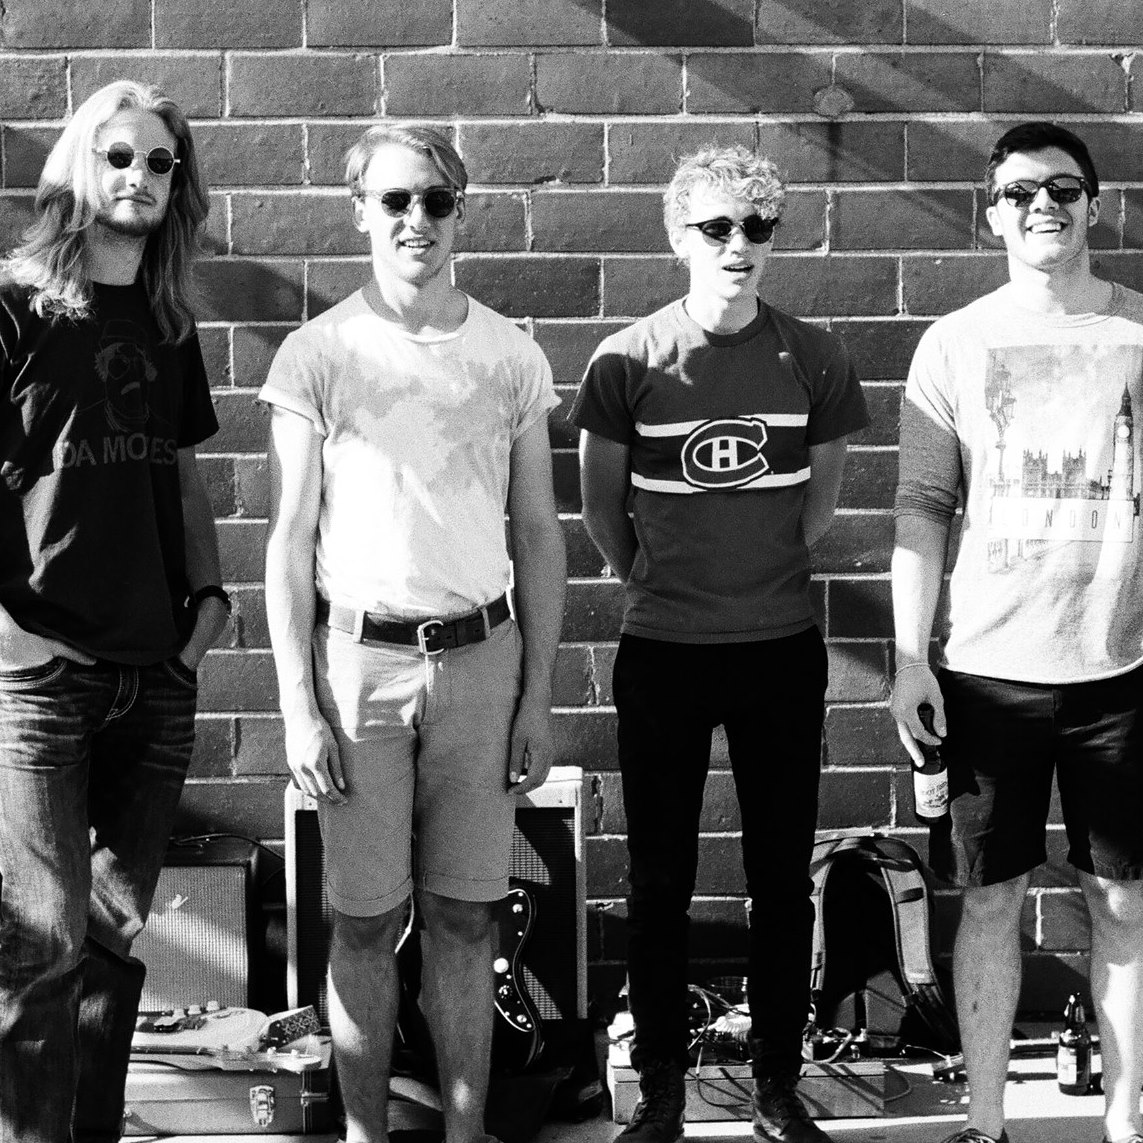 4 members of Sioux Center's The Aircraft smile with sunglasses on in front of a brick wall